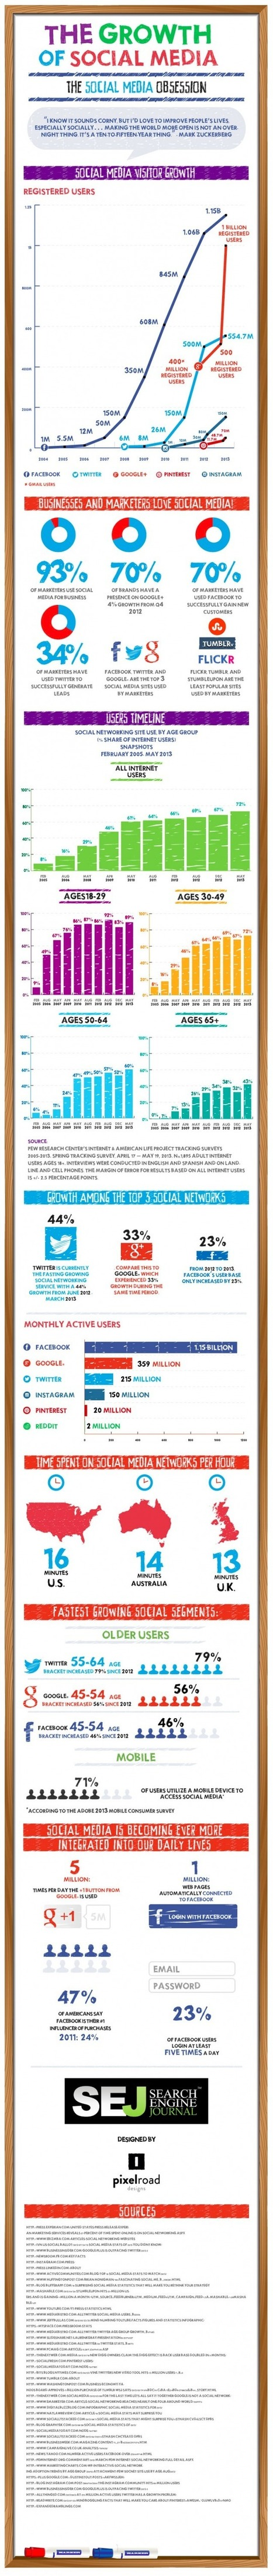 The Growth of Social Media v2.0 [INFOGRAPHIC] - Search Engine Journal | Infographics and Social Media | Scoop.it